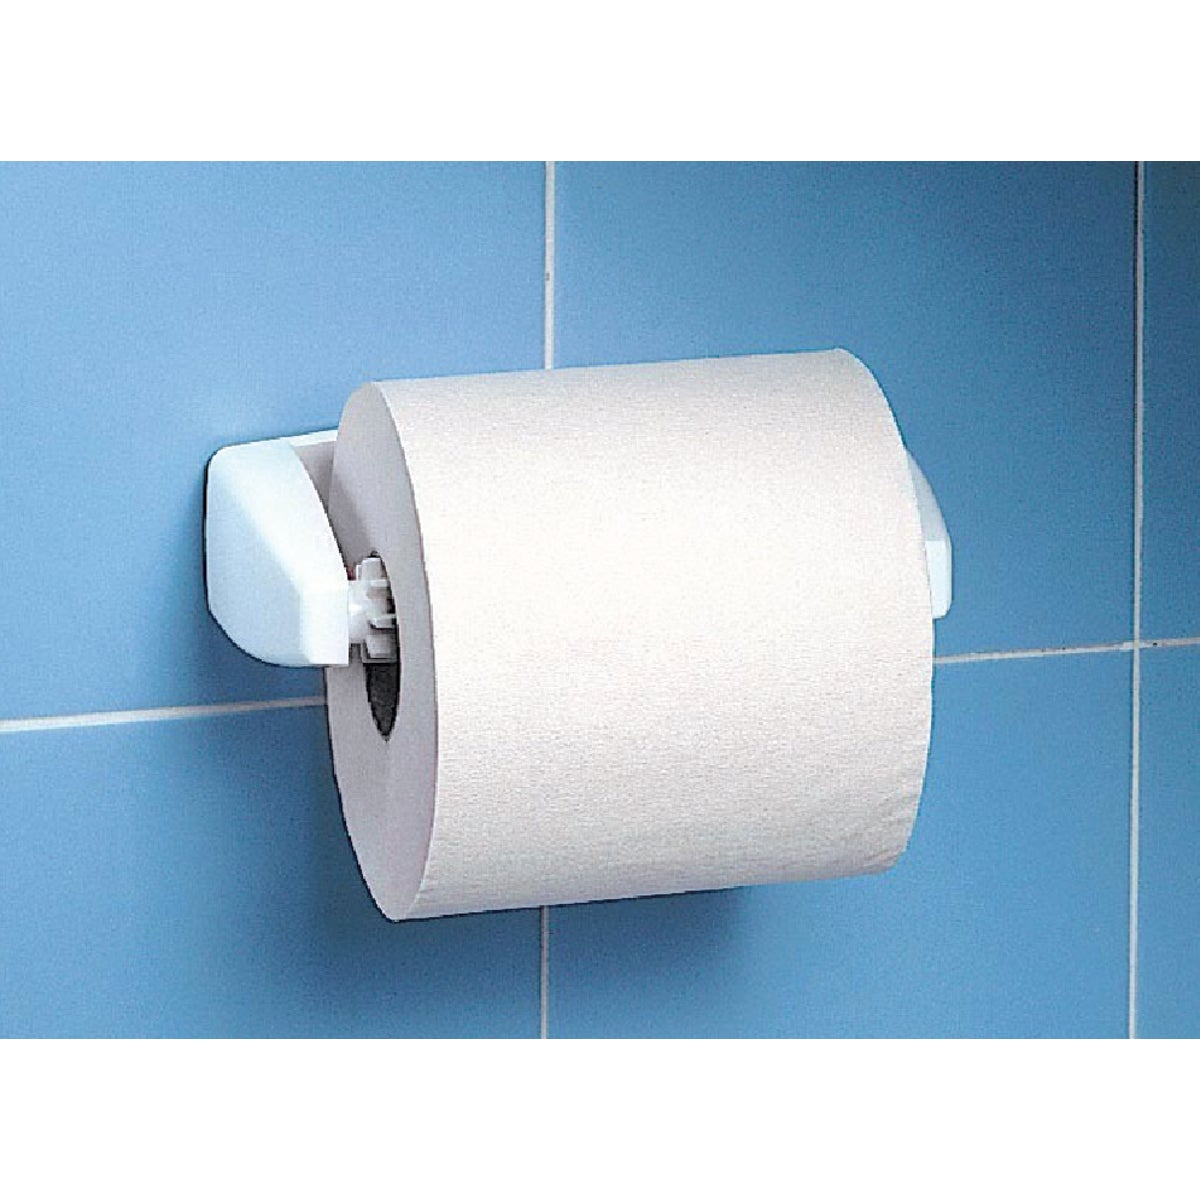 WHITE TISSUE HOLDER - 22980302.12 by Homz Products  Bath